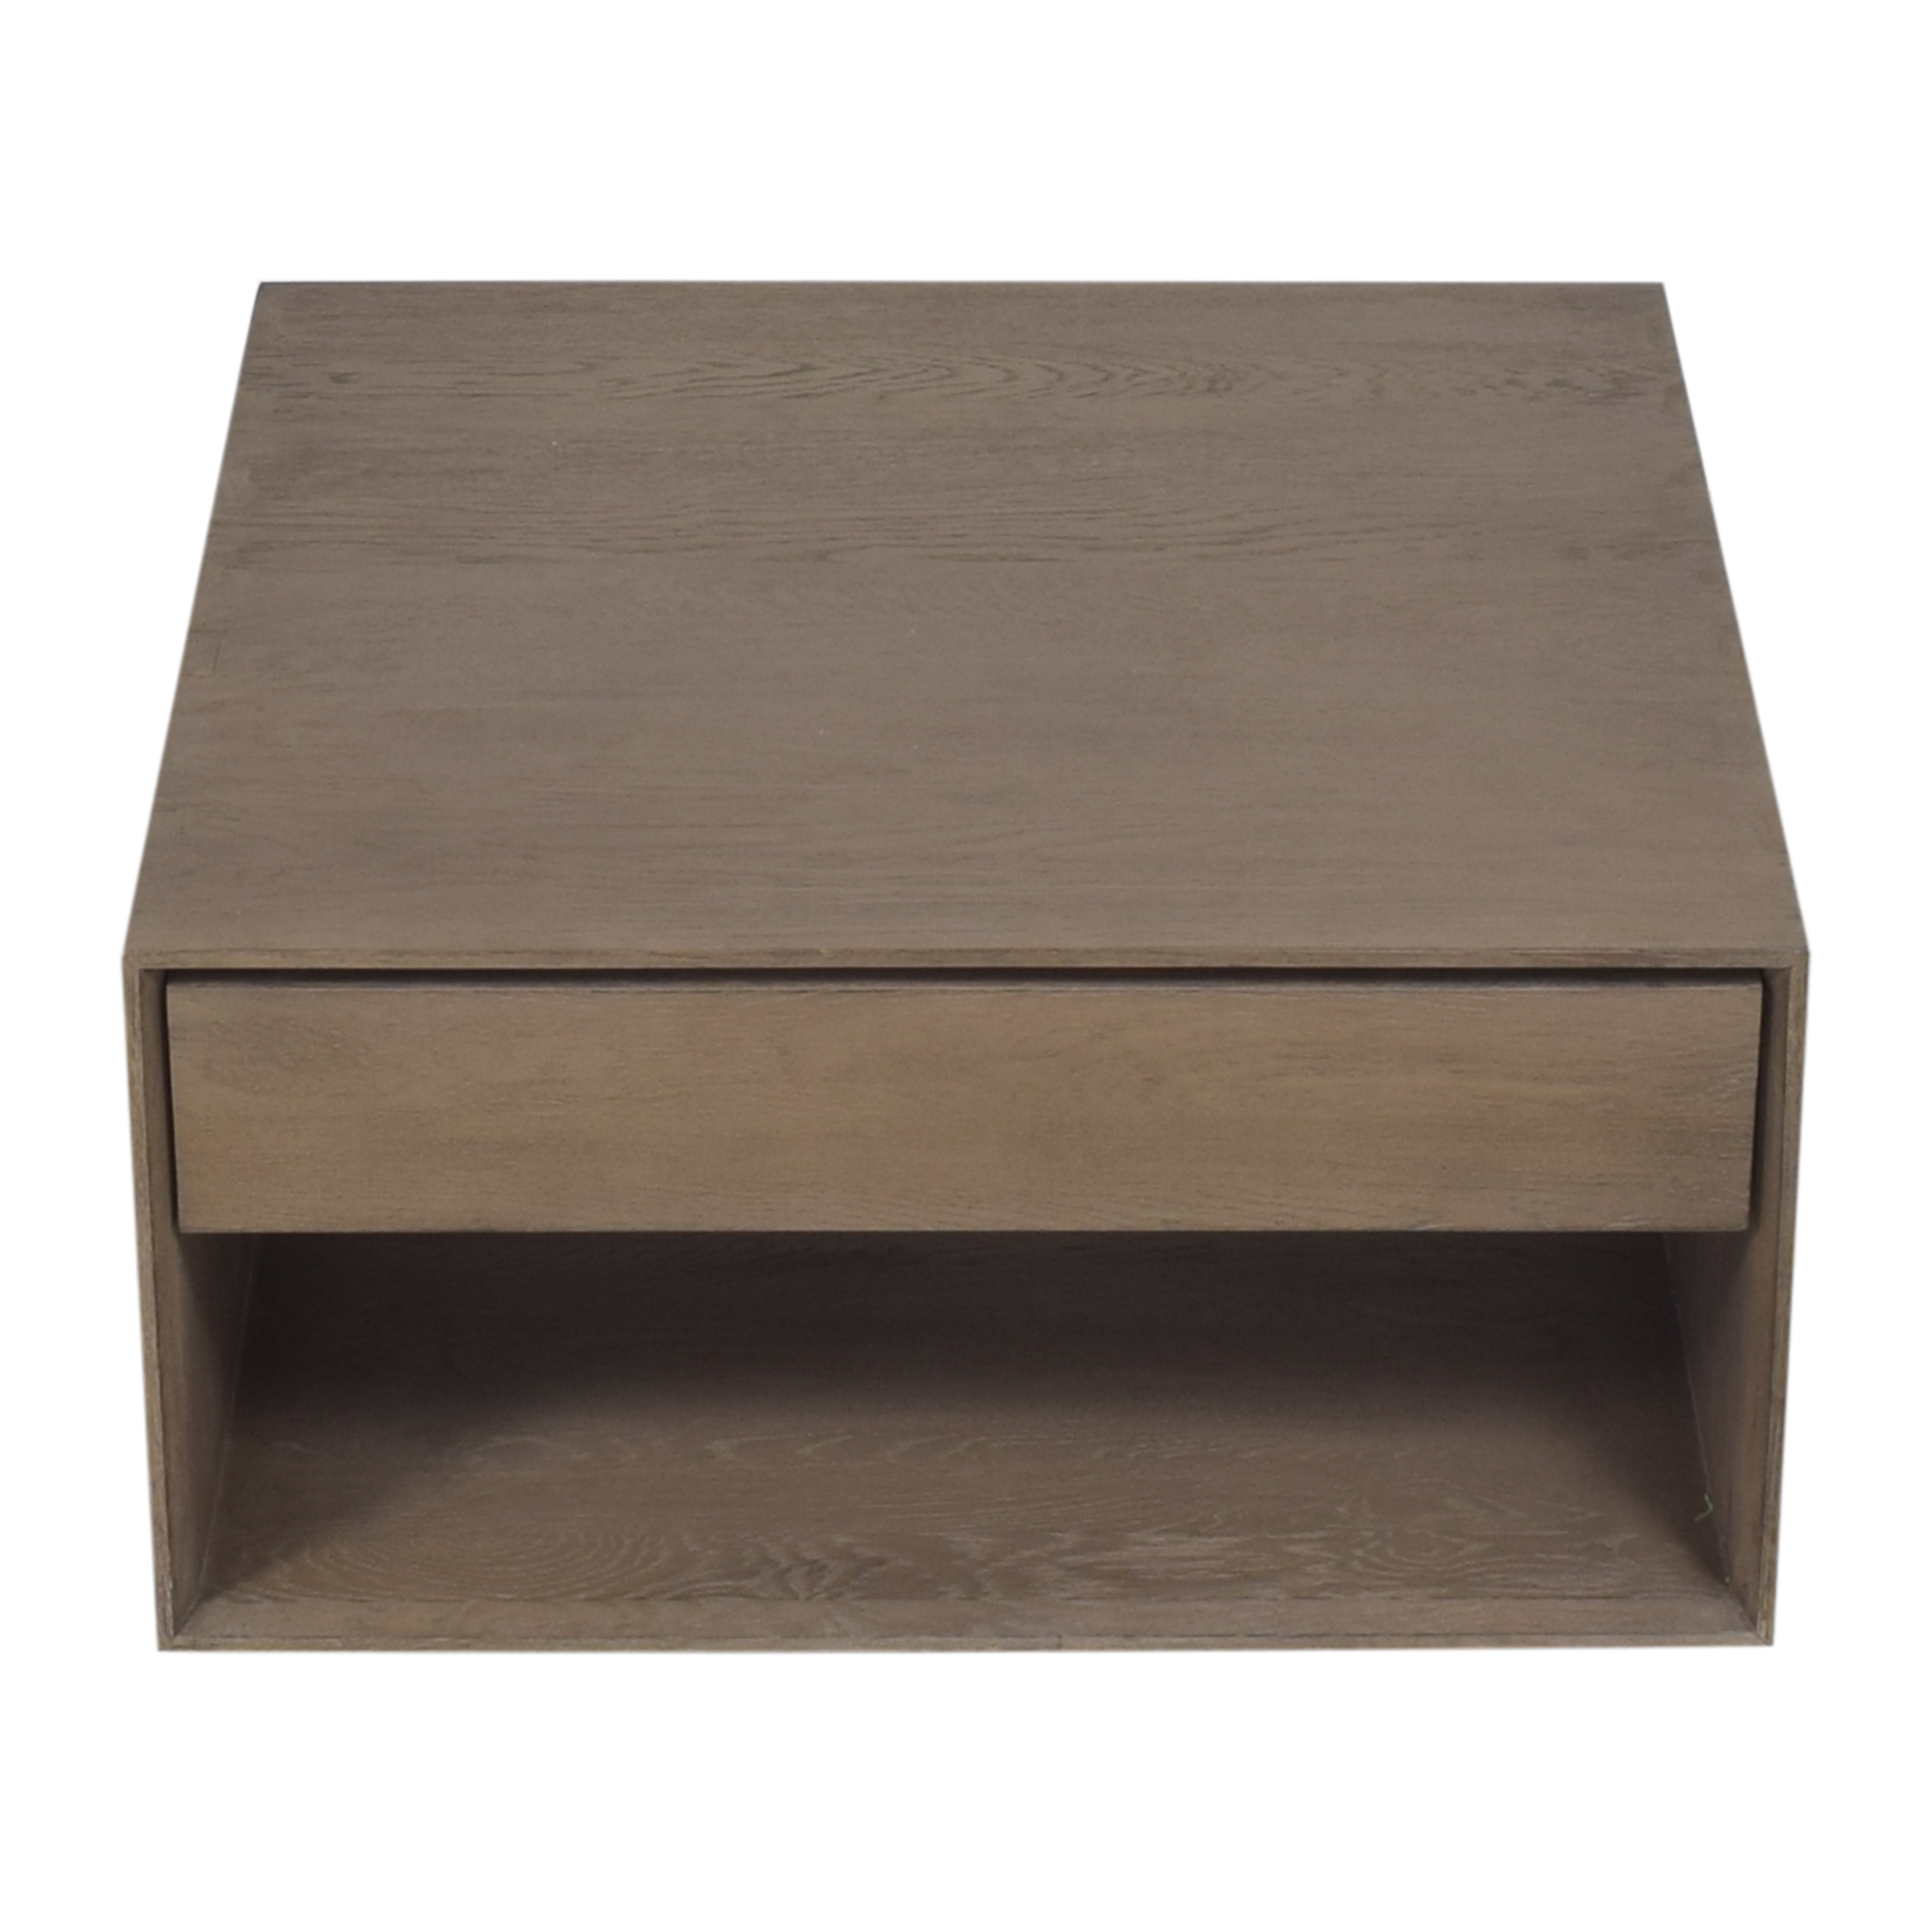 buy Crate & Barrel Ethan Square Coffee Table Crate & Barrel Tables